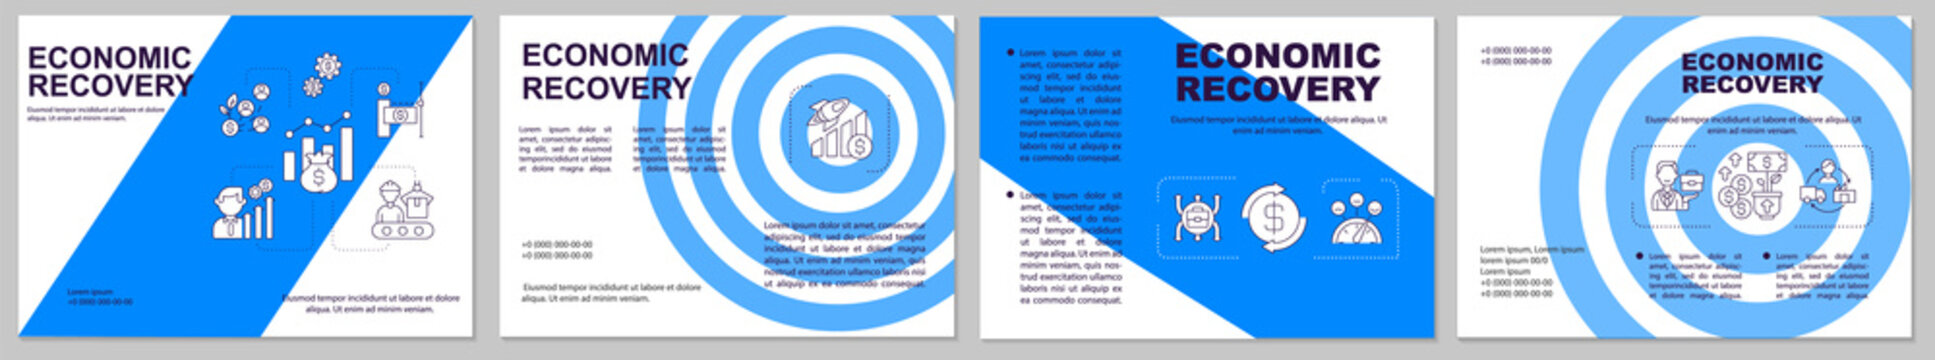 Economic recovery brochure template. Process of economic improving. Flyer, booklet, leaflet print, cover design with linear icons. Vector layouts for magazines, annual reports, advertising posters